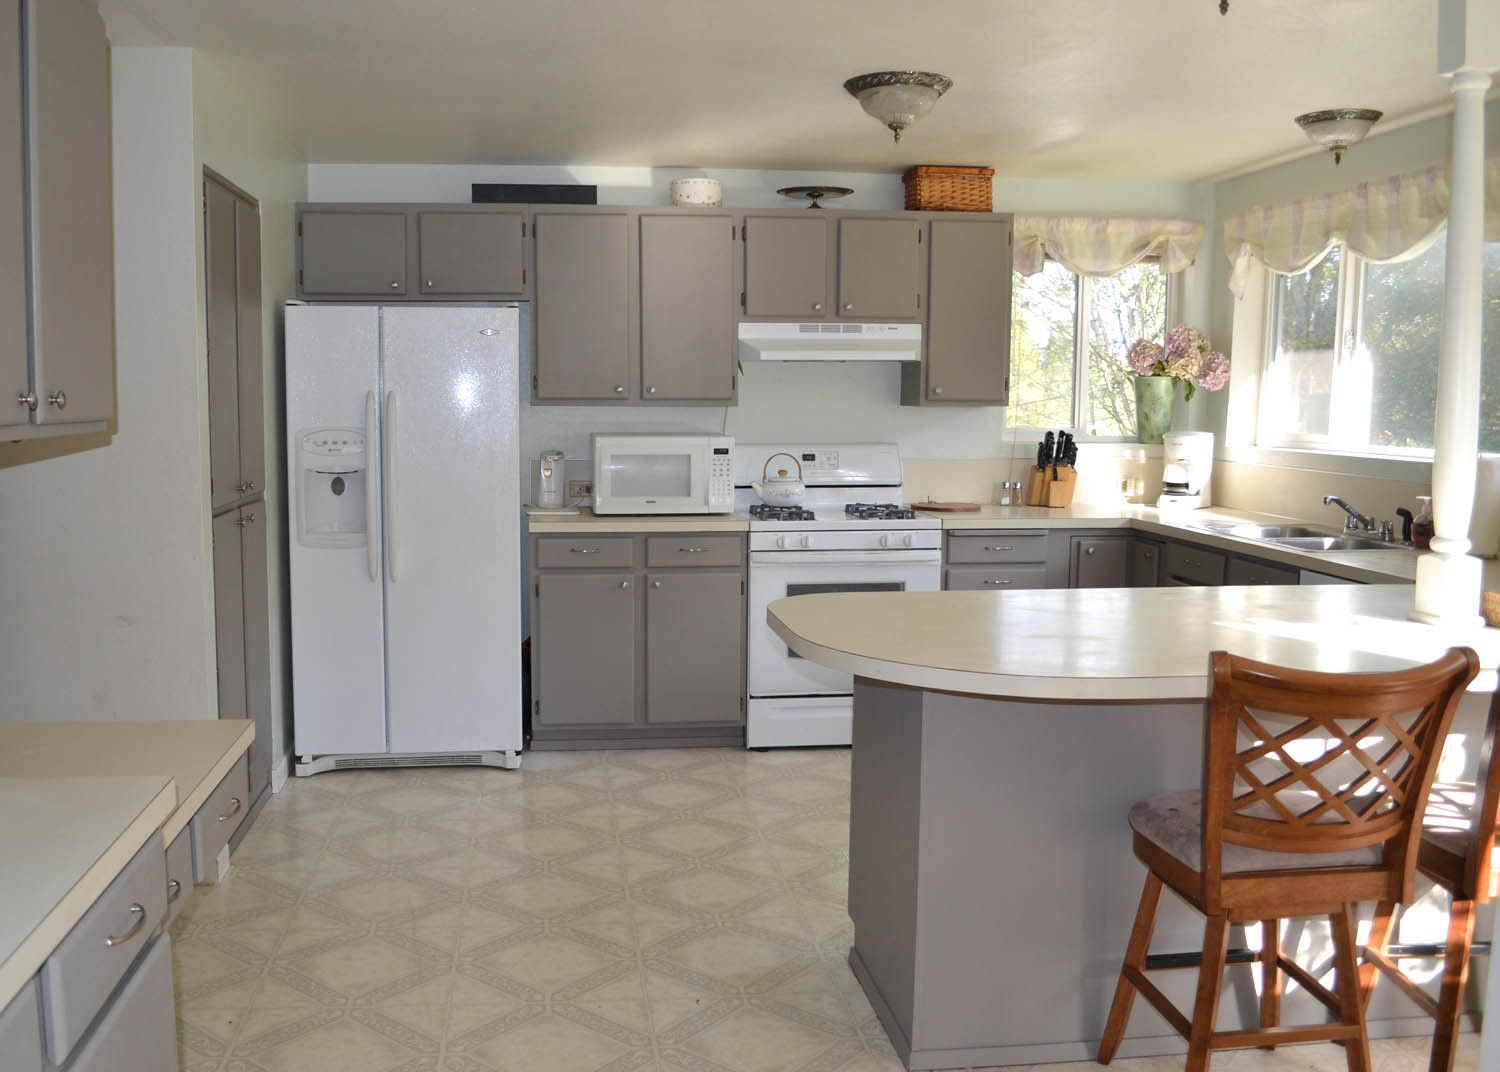 2019 Can formica Cabinets Be Painted - Unique Kitchen ...